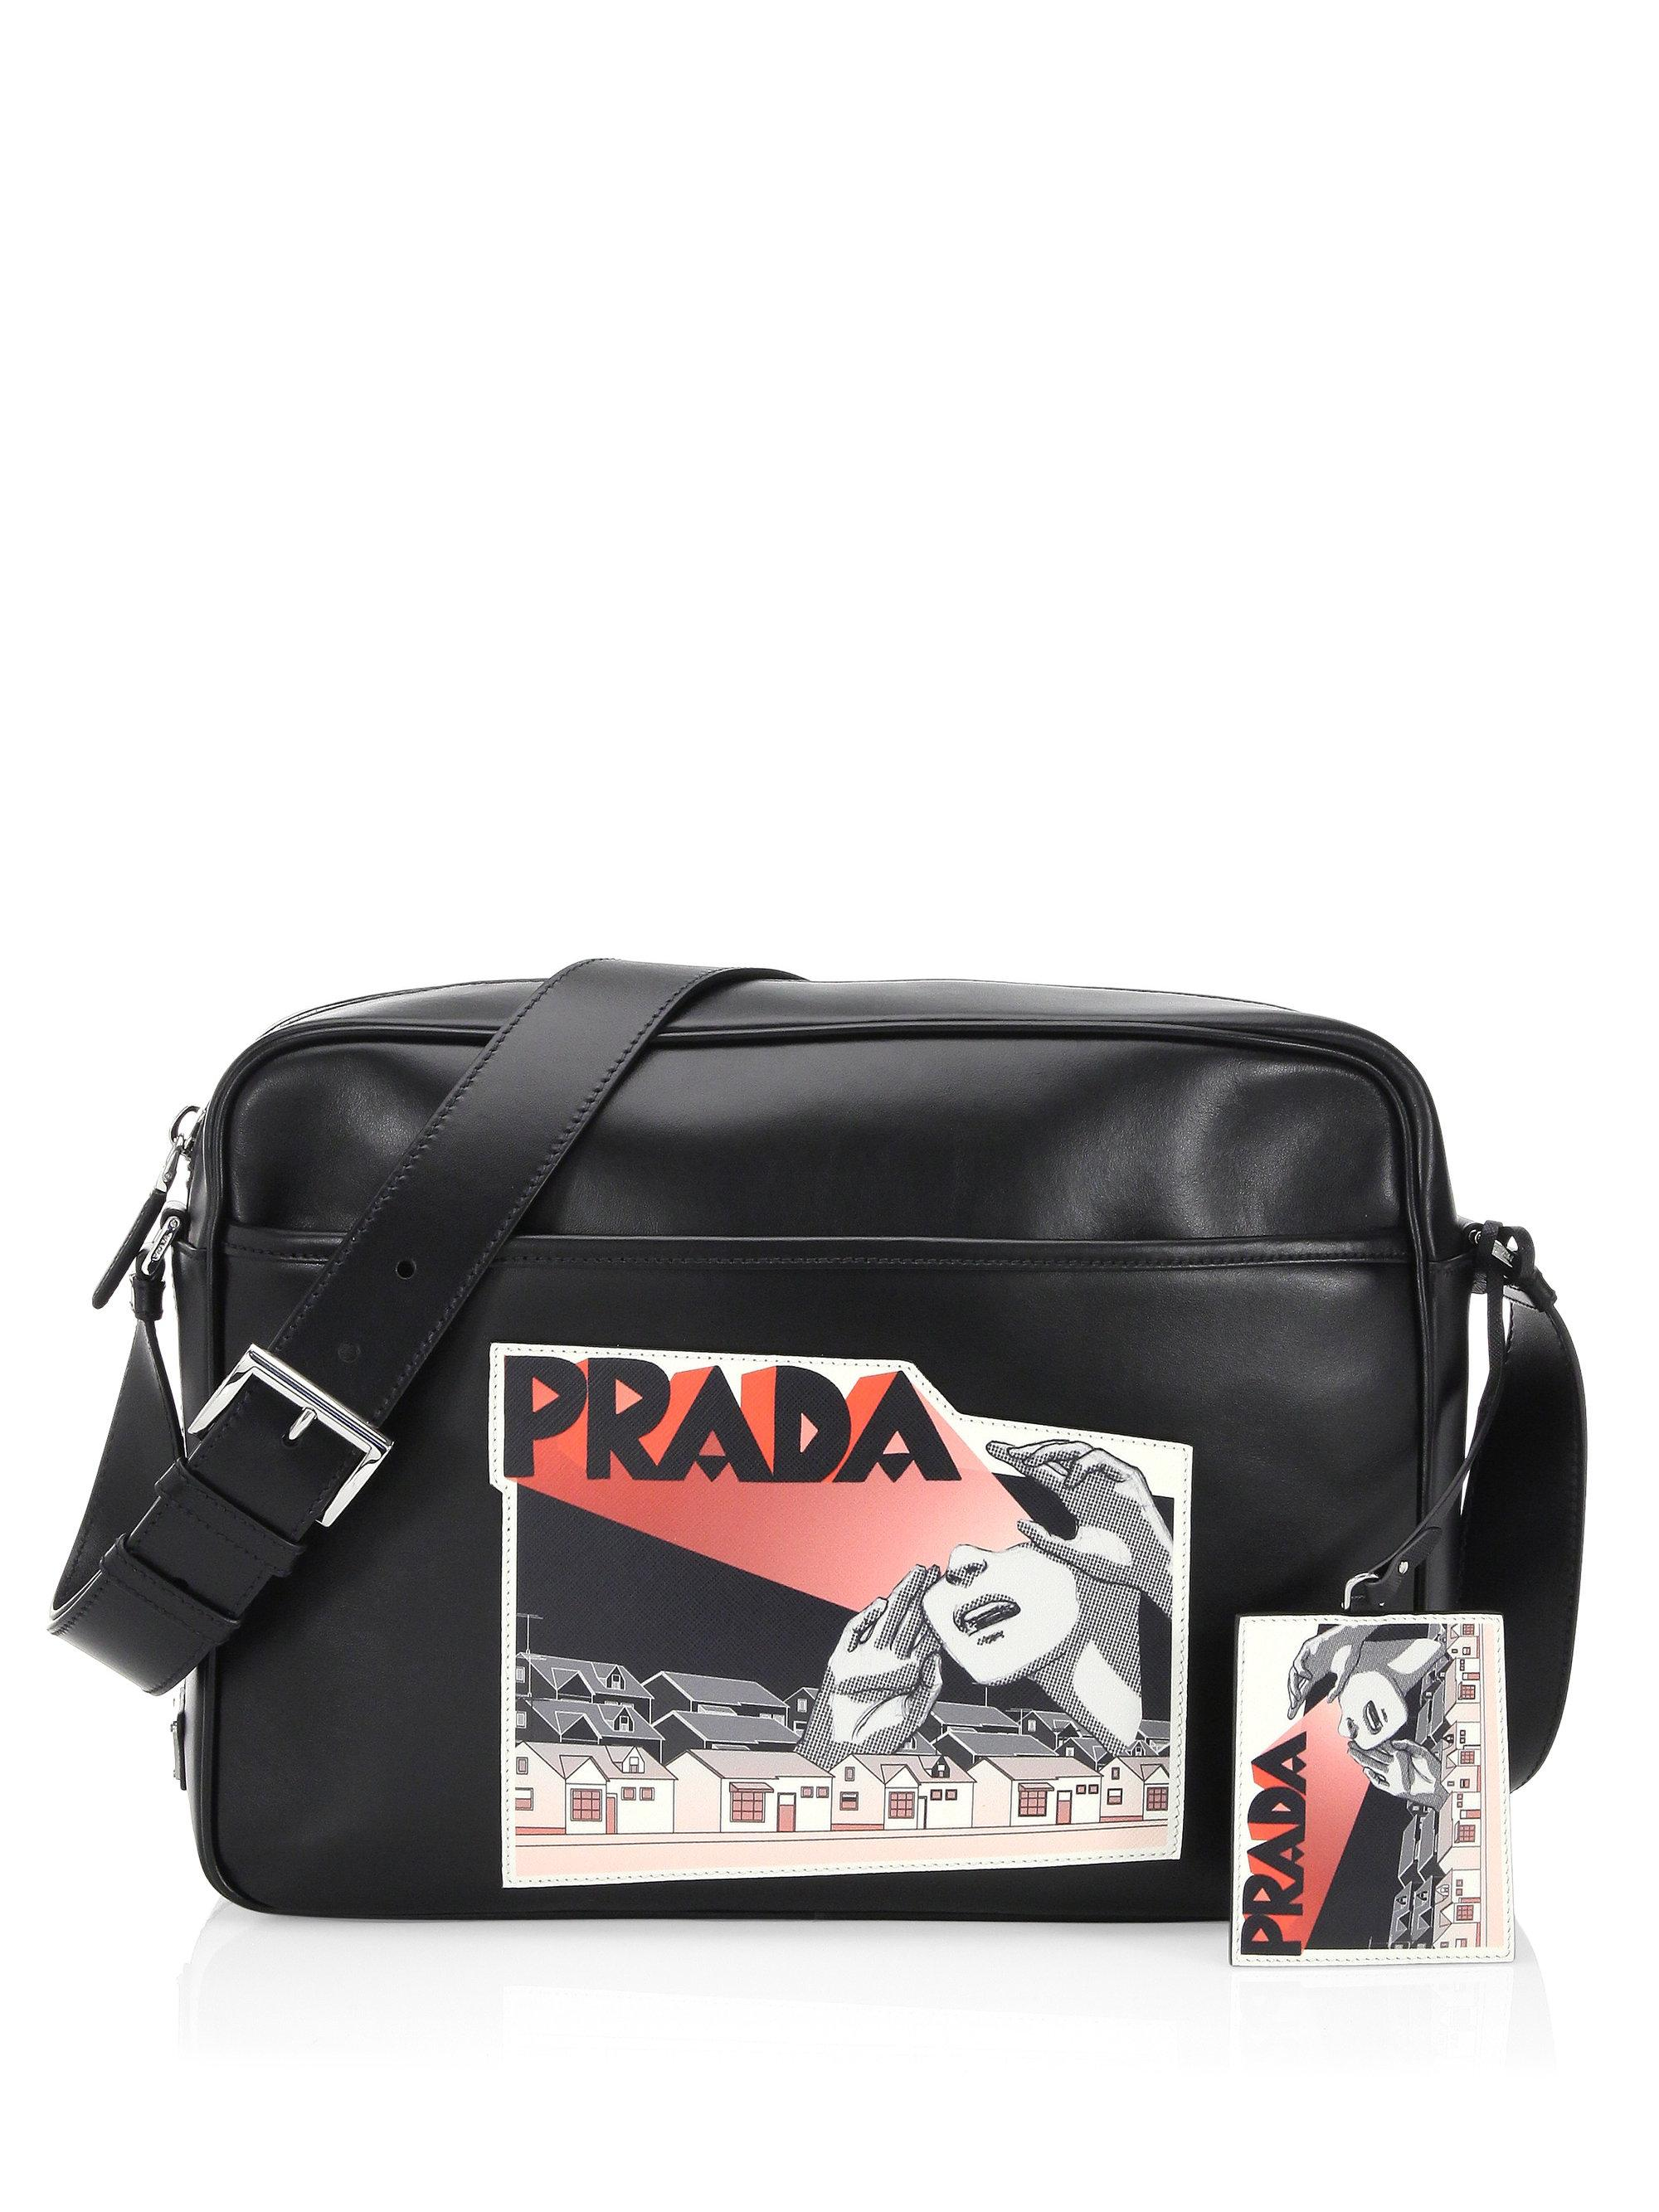 b645d1d7333f ... clearance lyst prada graphic messenger bag in black 088ed 385fa